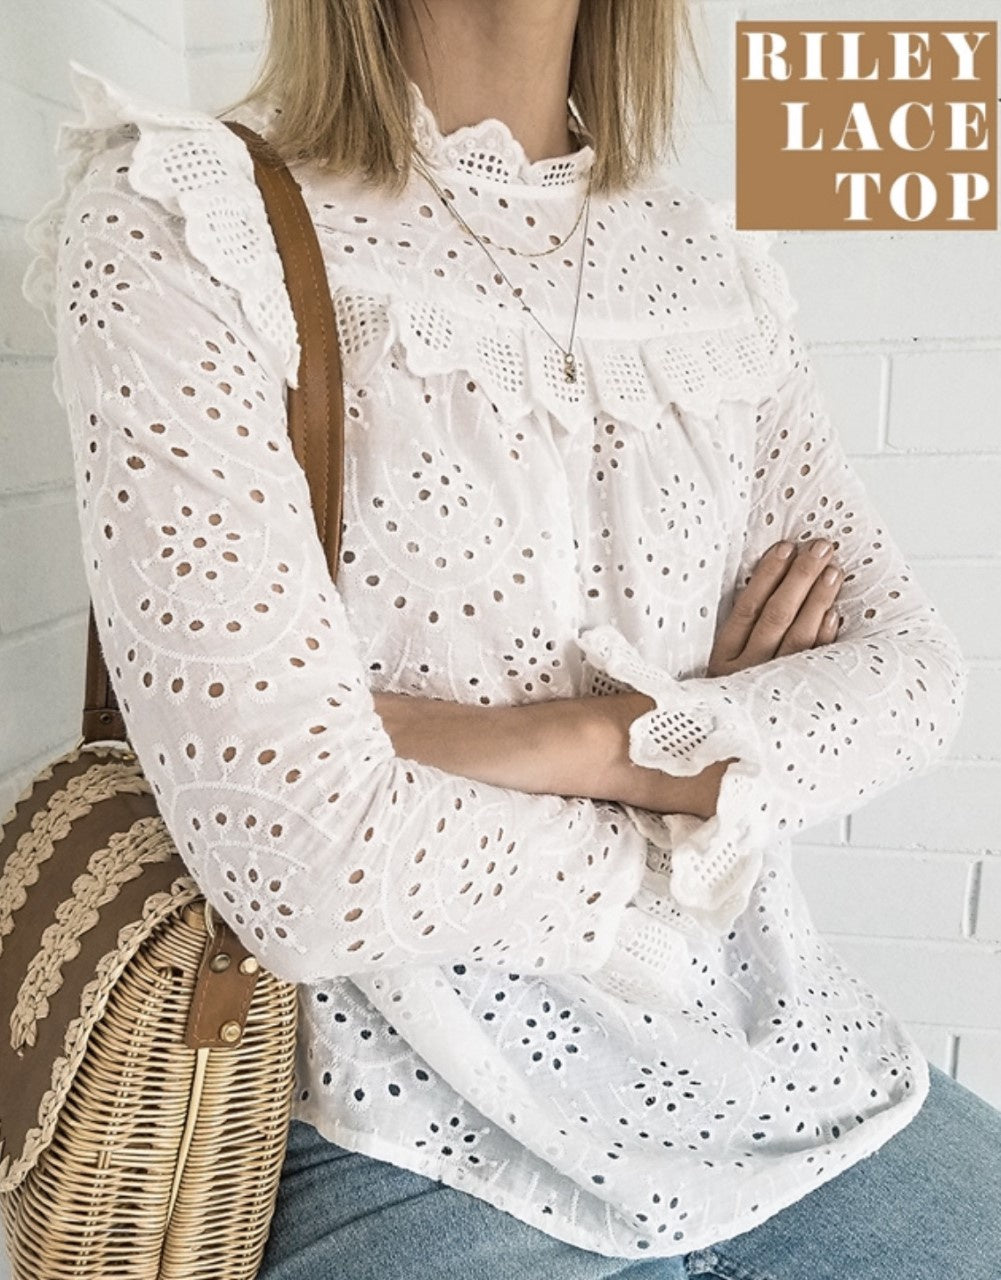 Riley Lace Top